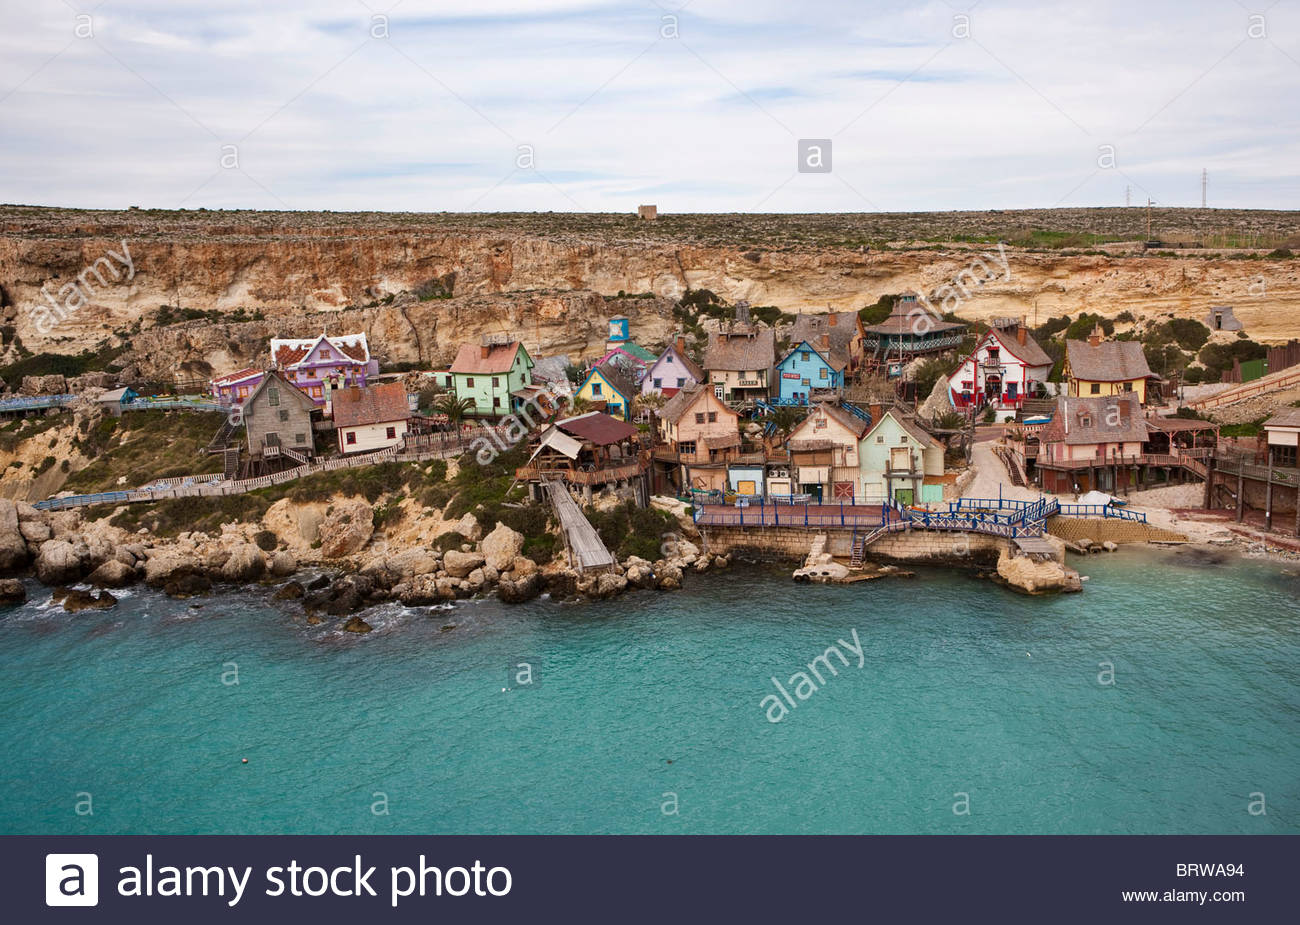 Malta Island, Anchor Bay, Popeye Village (sweethaven Village.